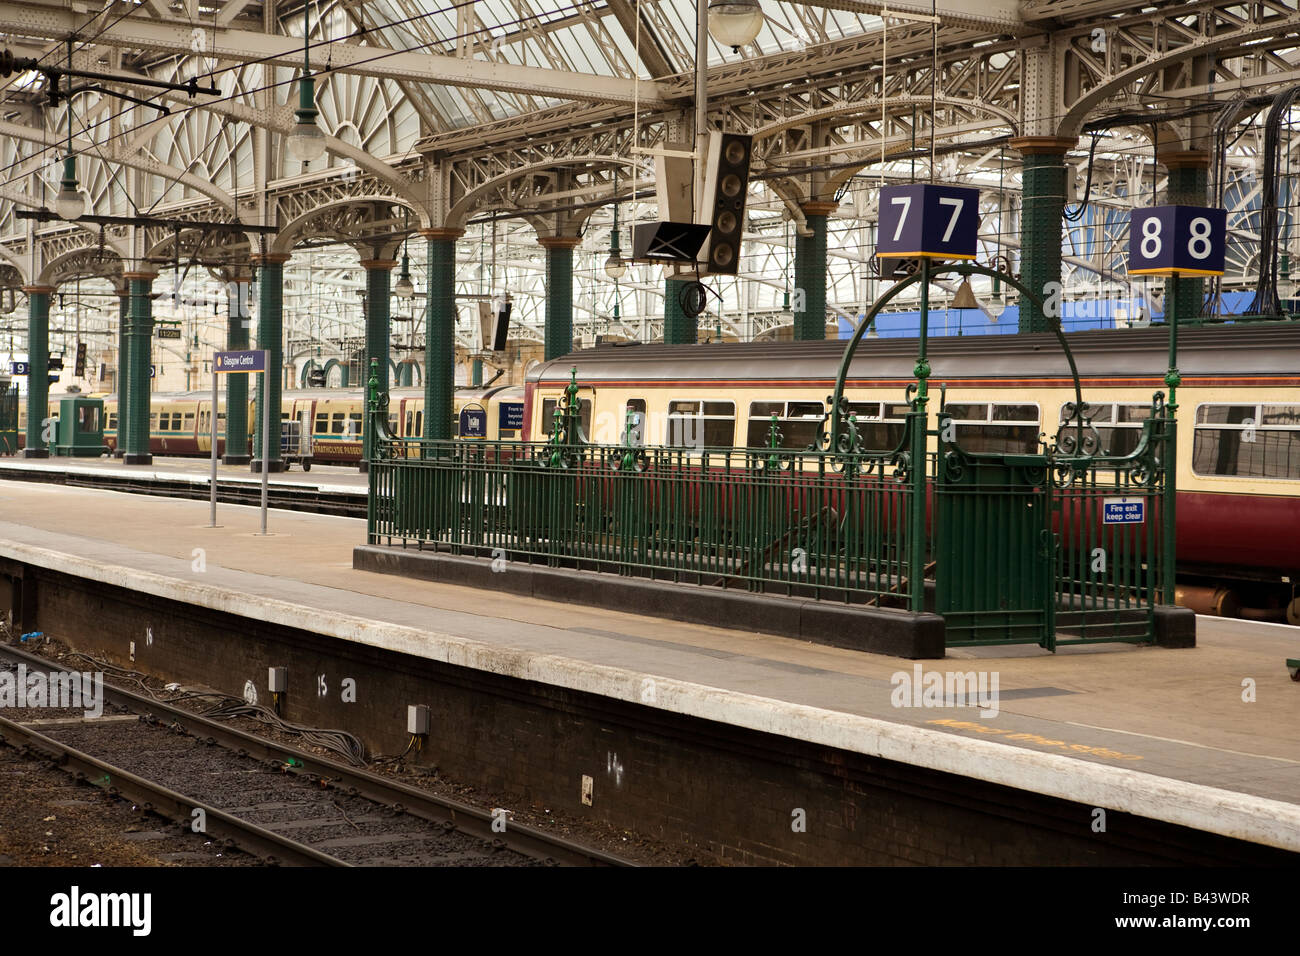 UK Scotland Glasgow Central Railway Station platform decorative ironwork stairs - Stock Image